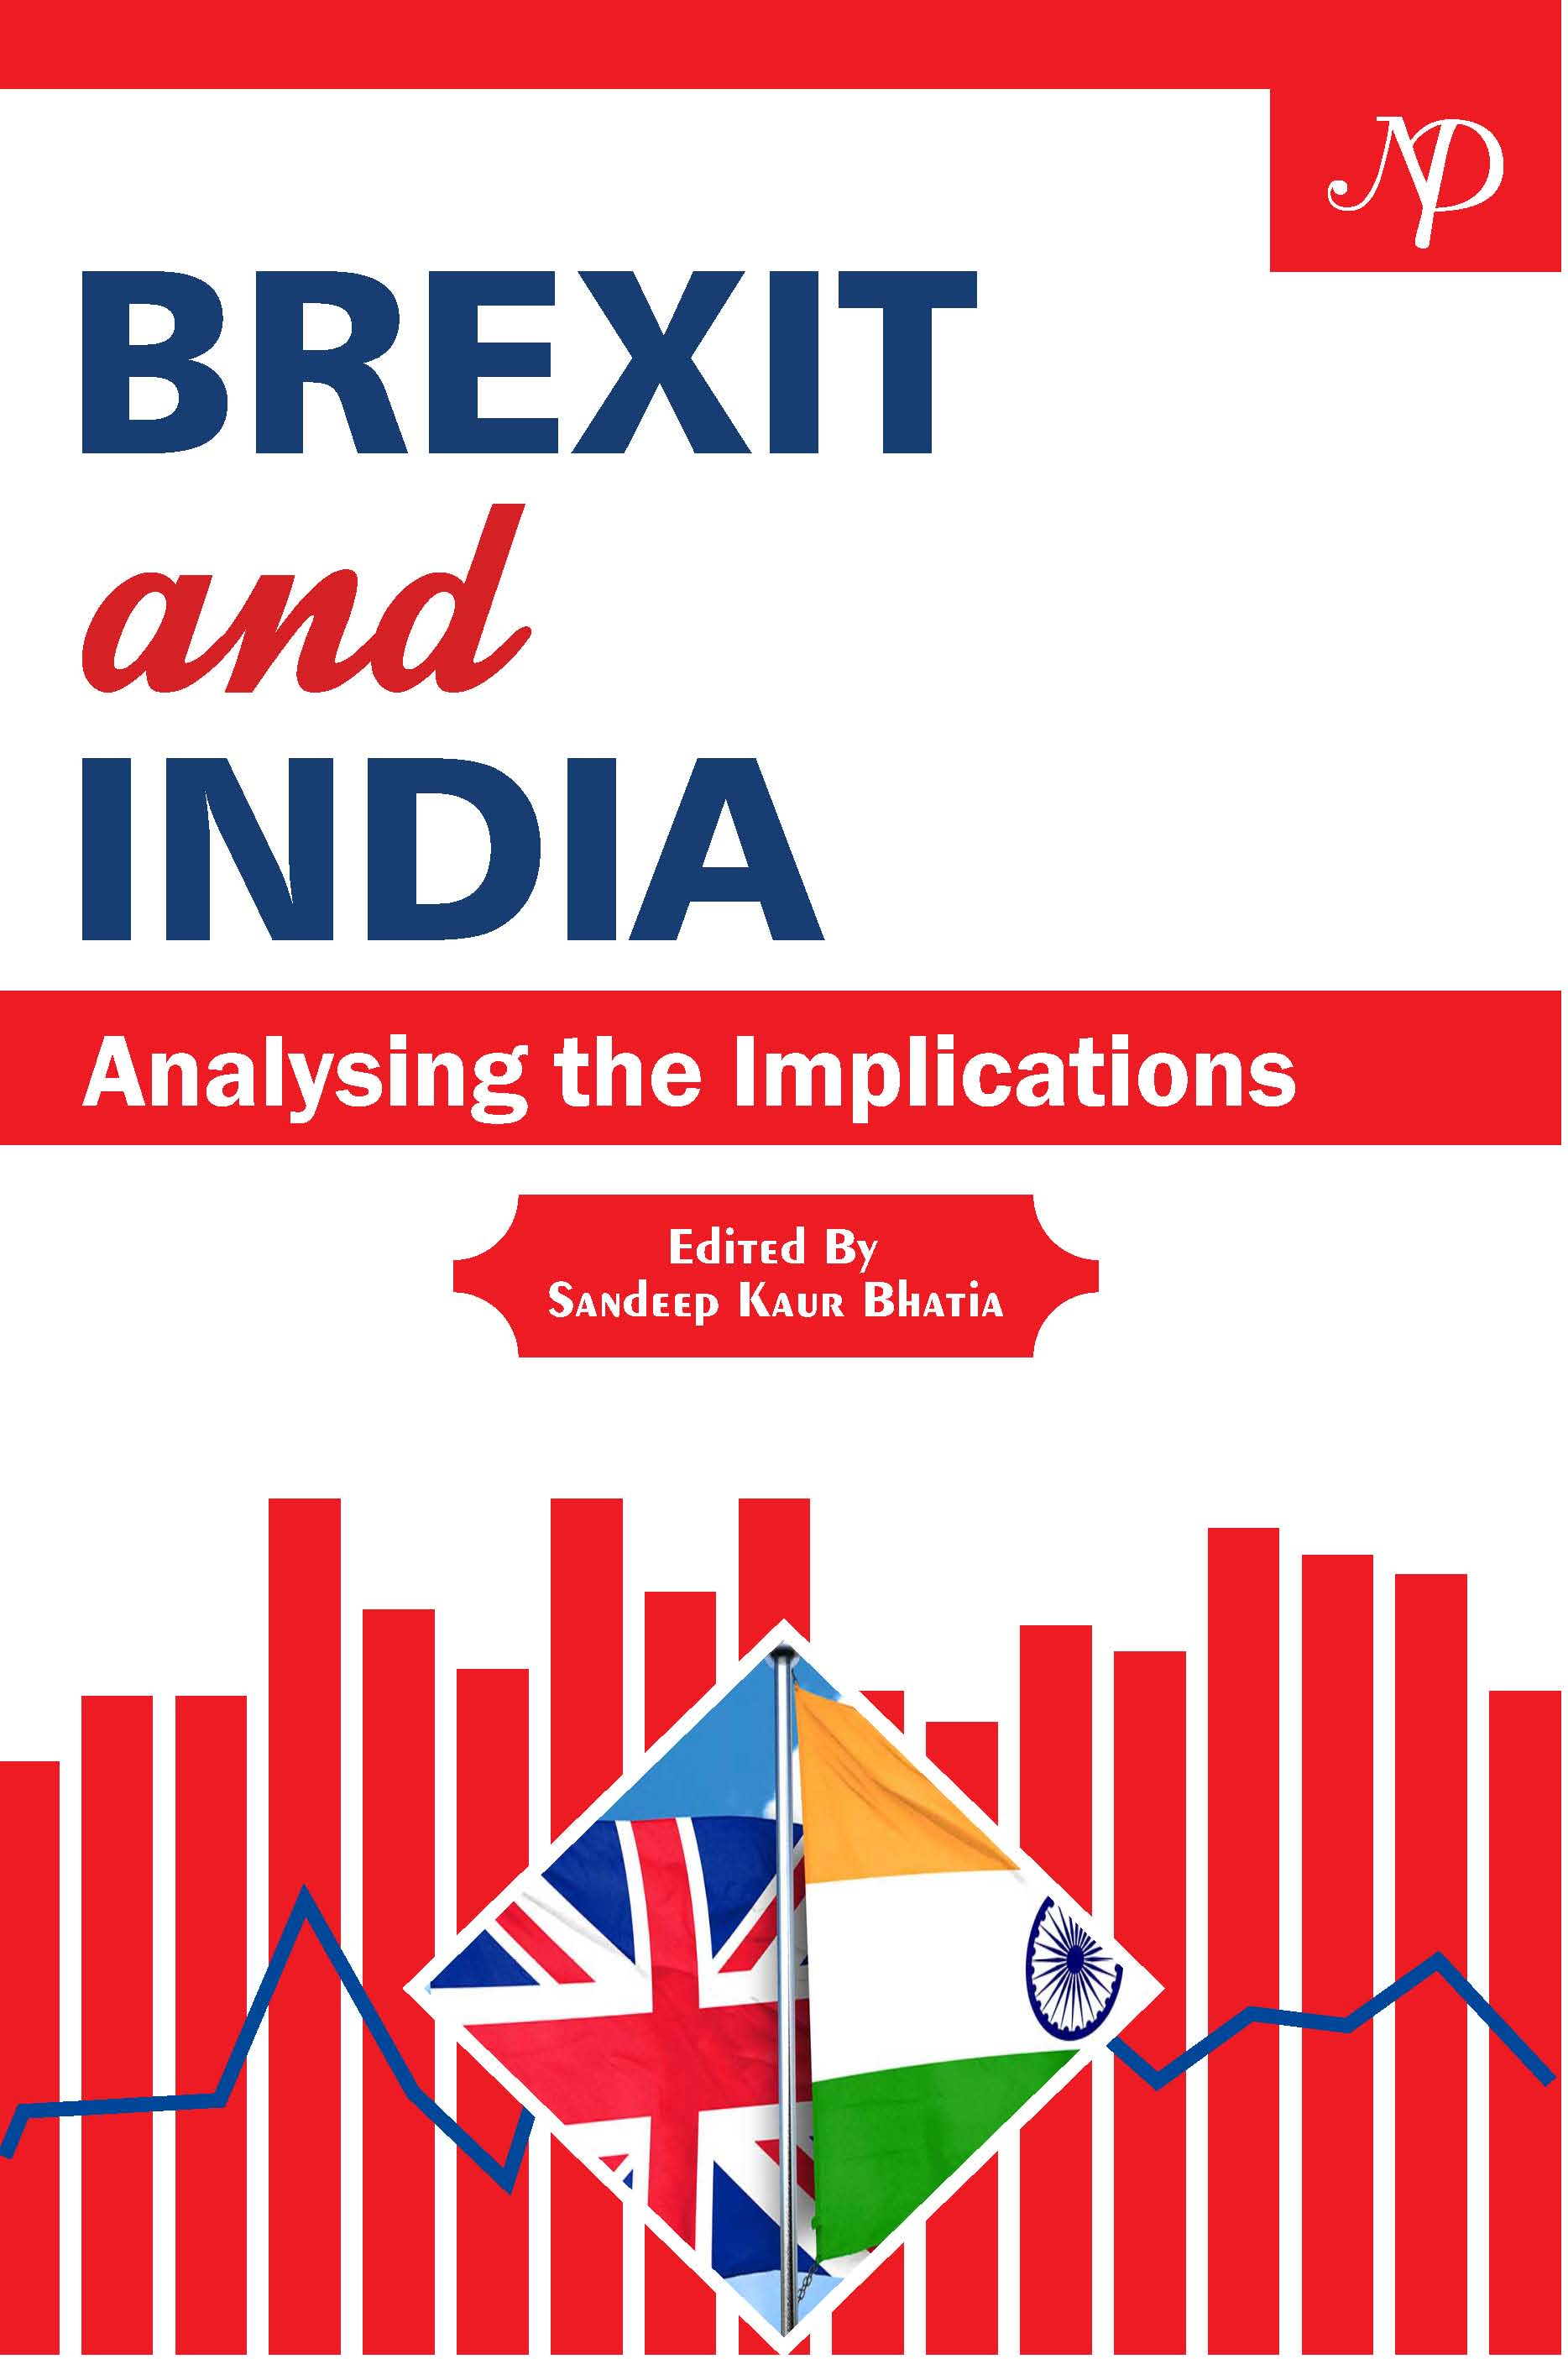 Brexit and India: Analysing the Implications Edited by Sandeep Kaur Bhatia